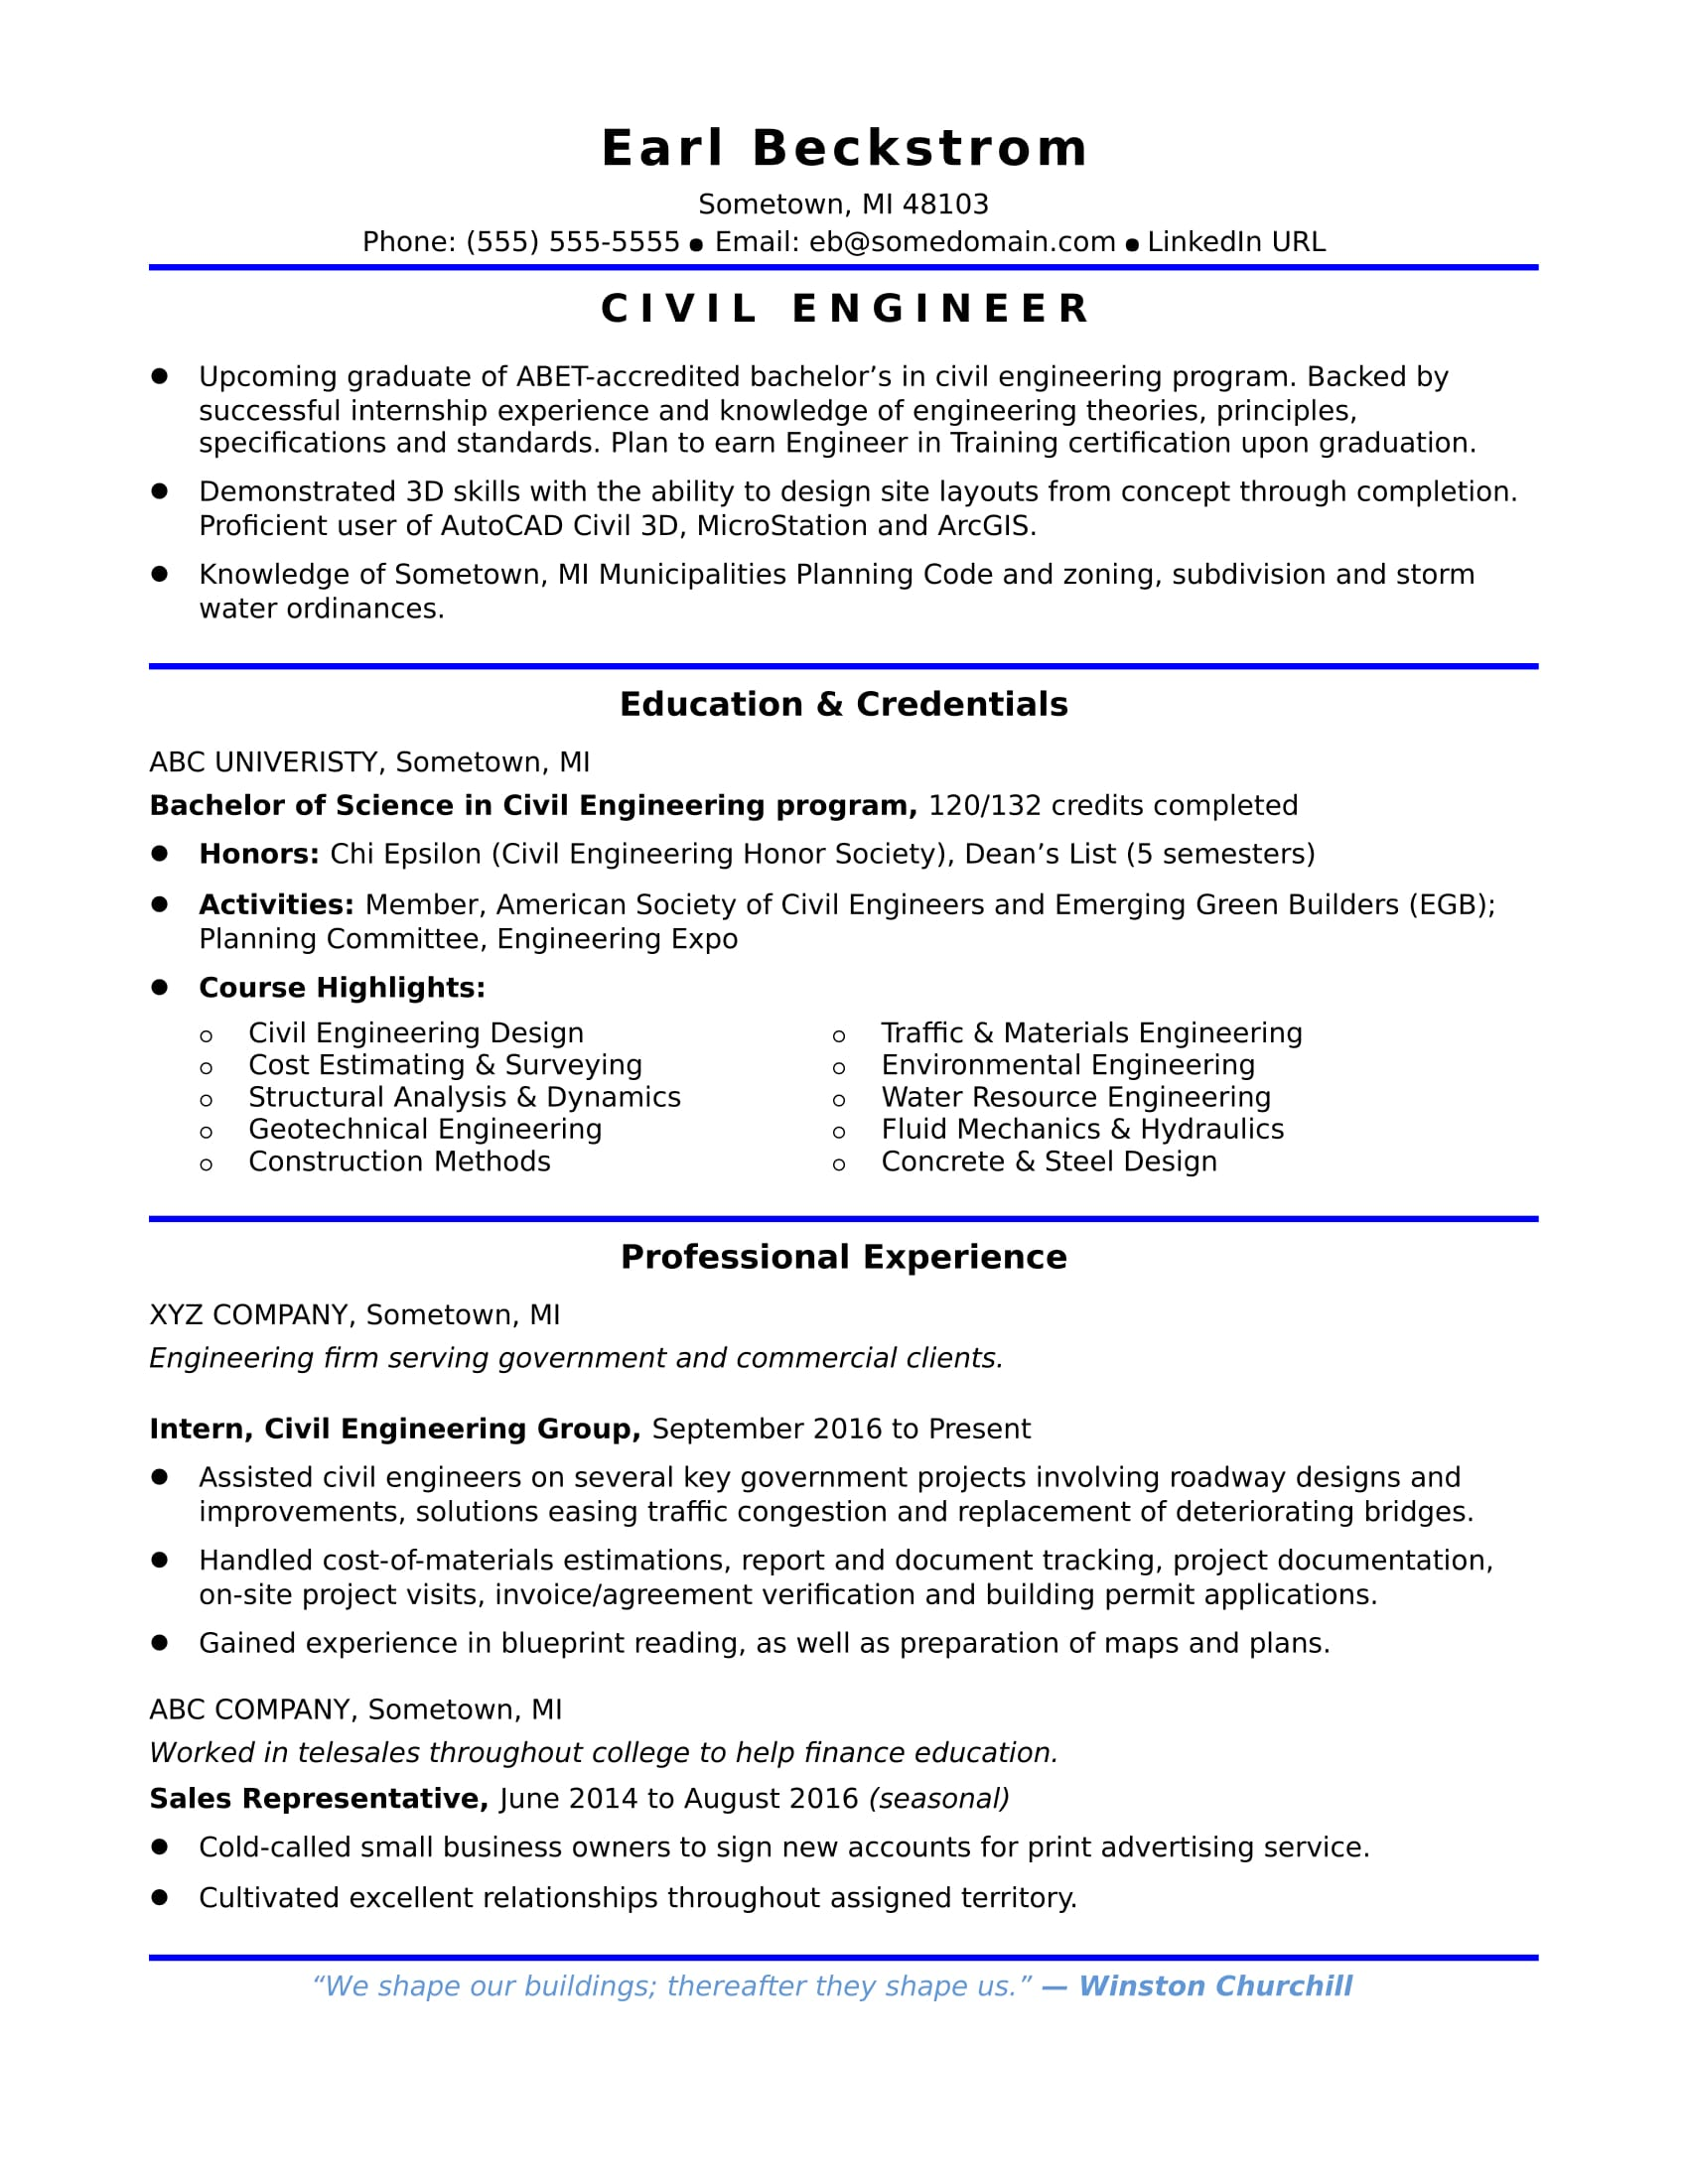 sample resume for an entry level civil engineer - Sample Resume Graduate